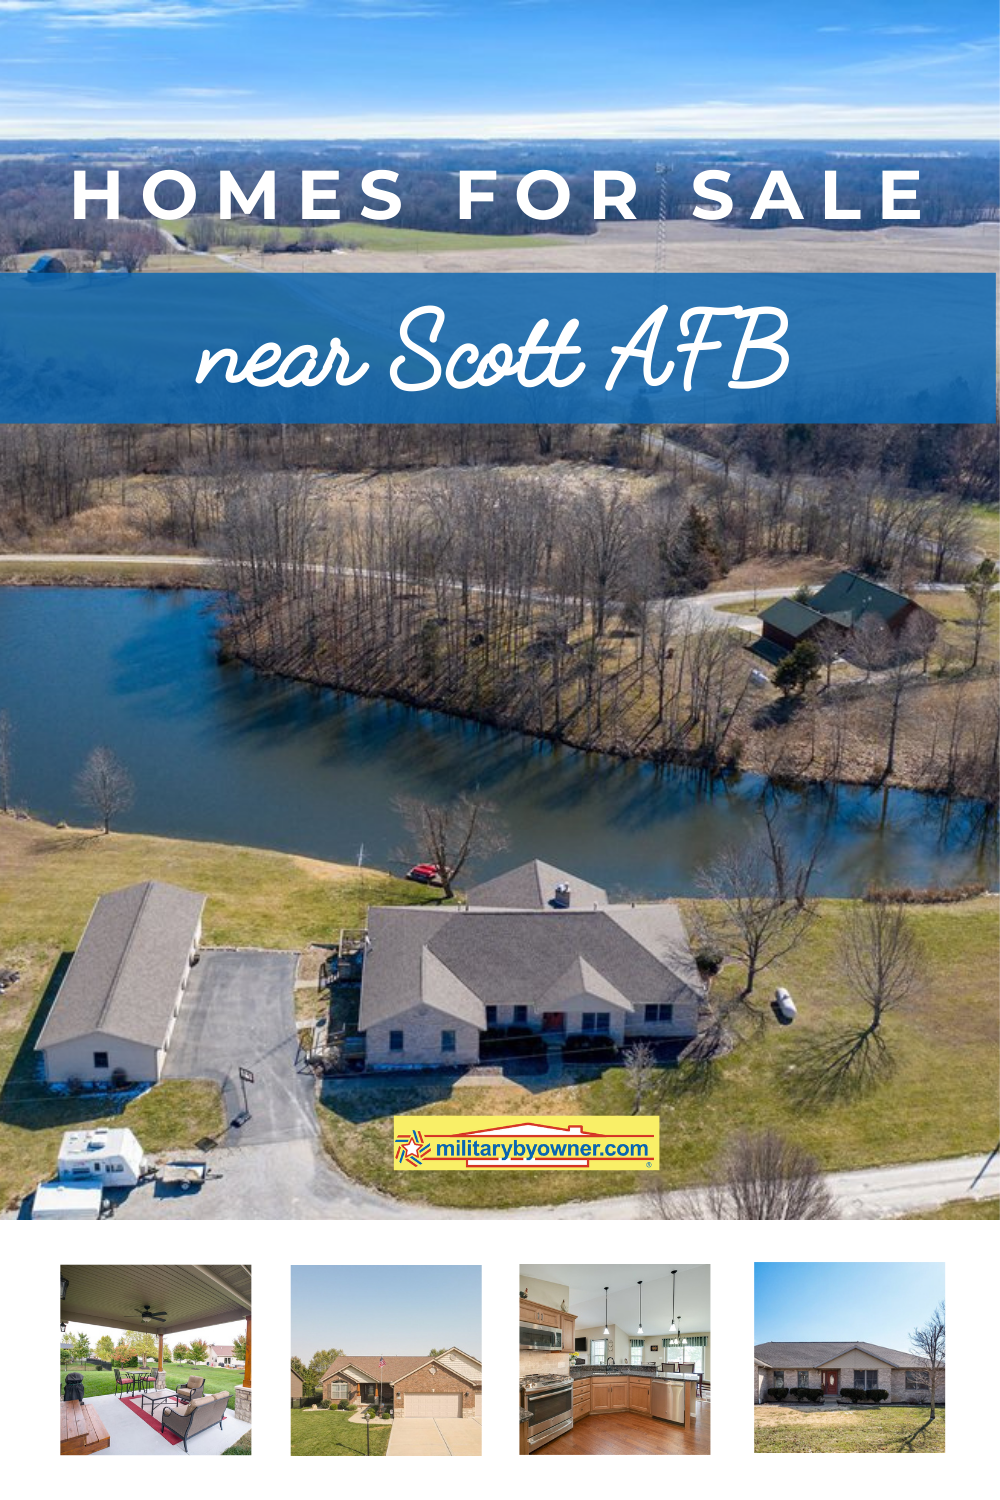 Homes for Sale Near Scott AFB